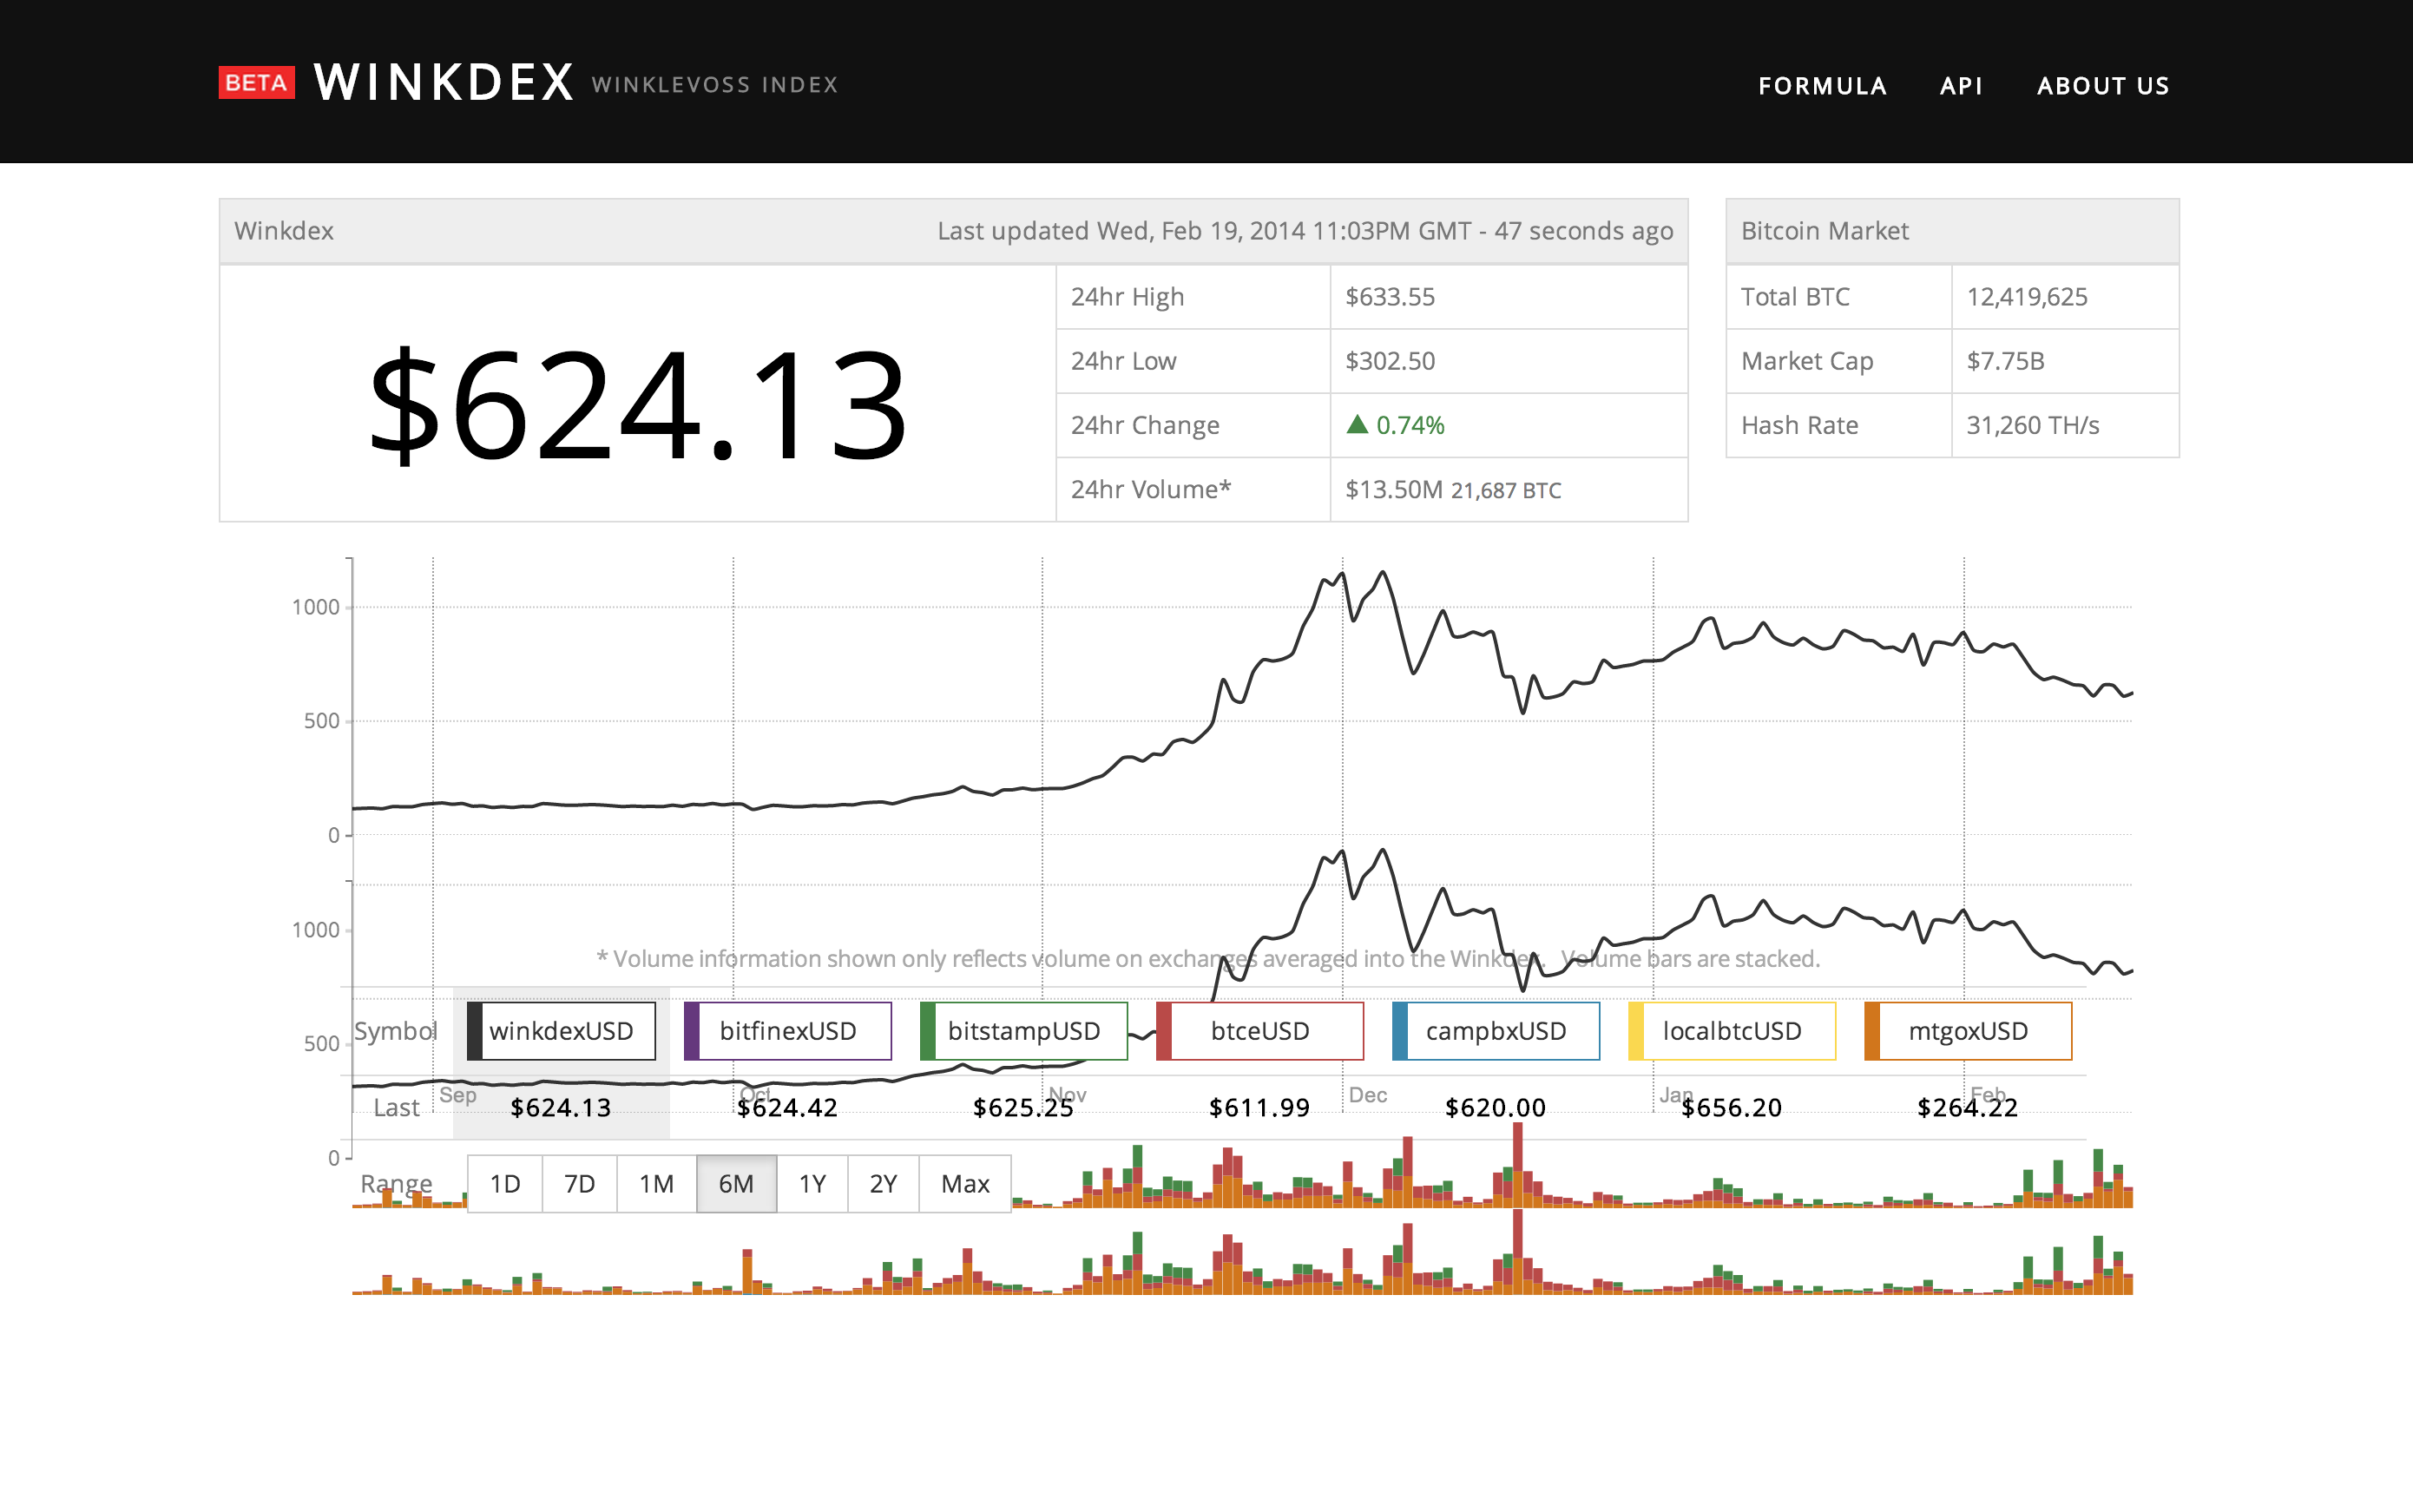 Winklevoss Winkdex bitcoin price index